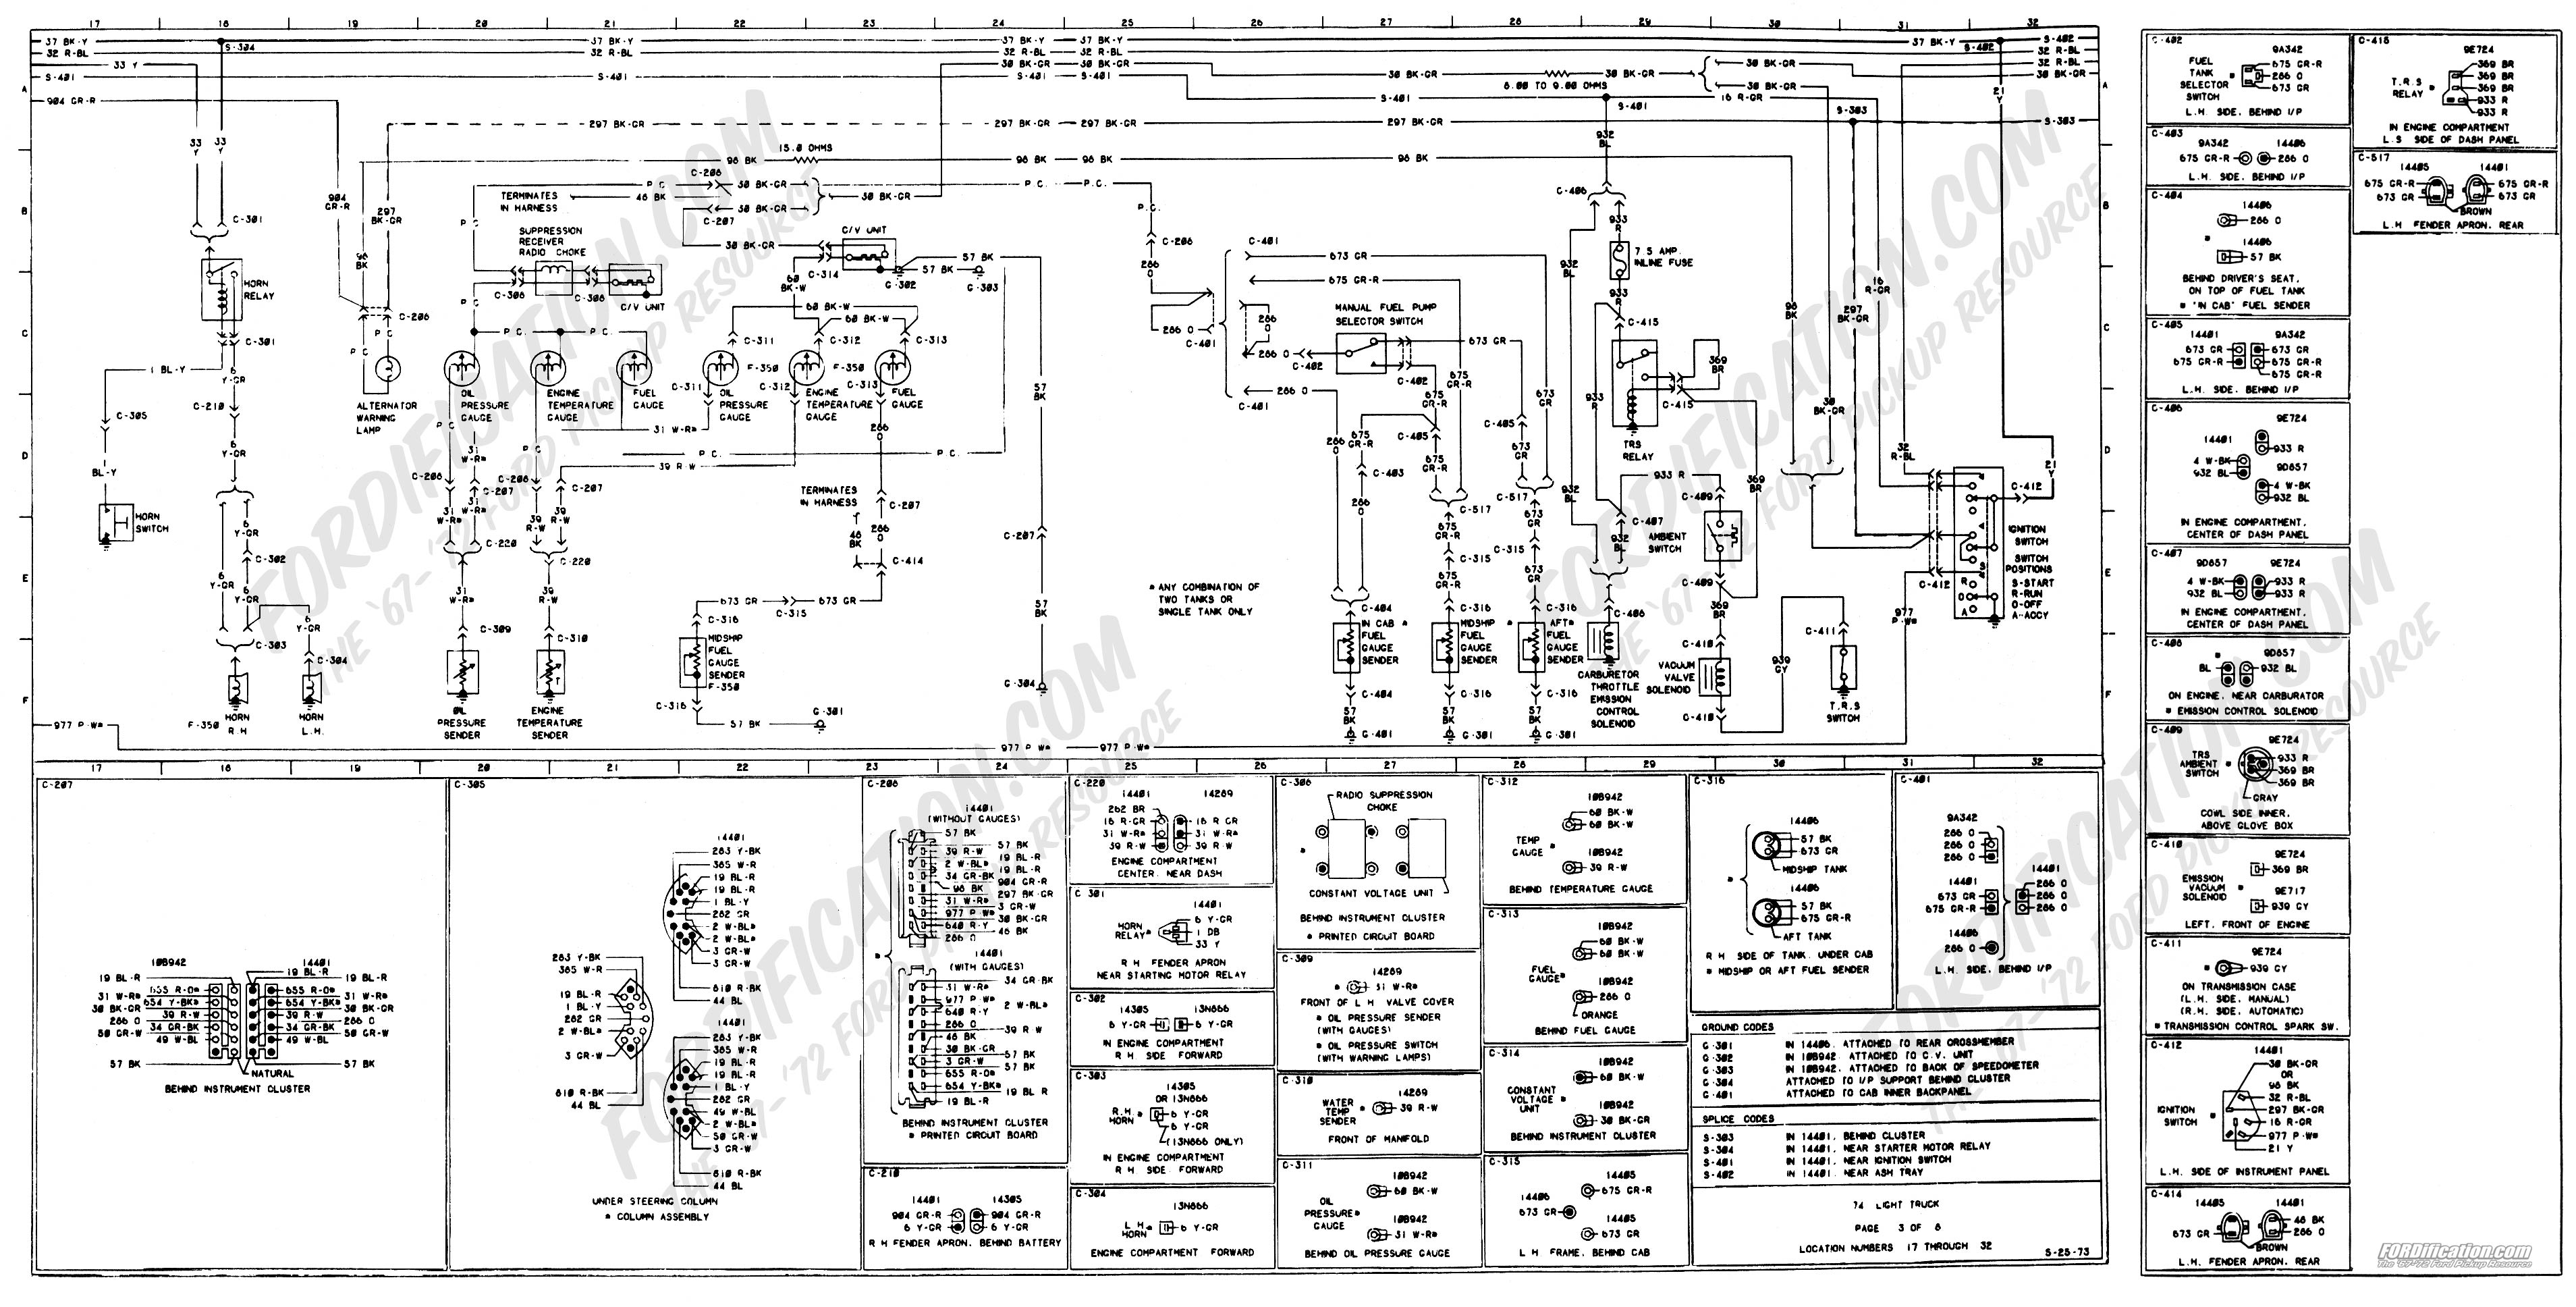 wiring_74master_3of8 1973 1979 ford truck wiring diagrams & schematics fordification net ford ltl 9000 wiring diagram at suagrazia.org